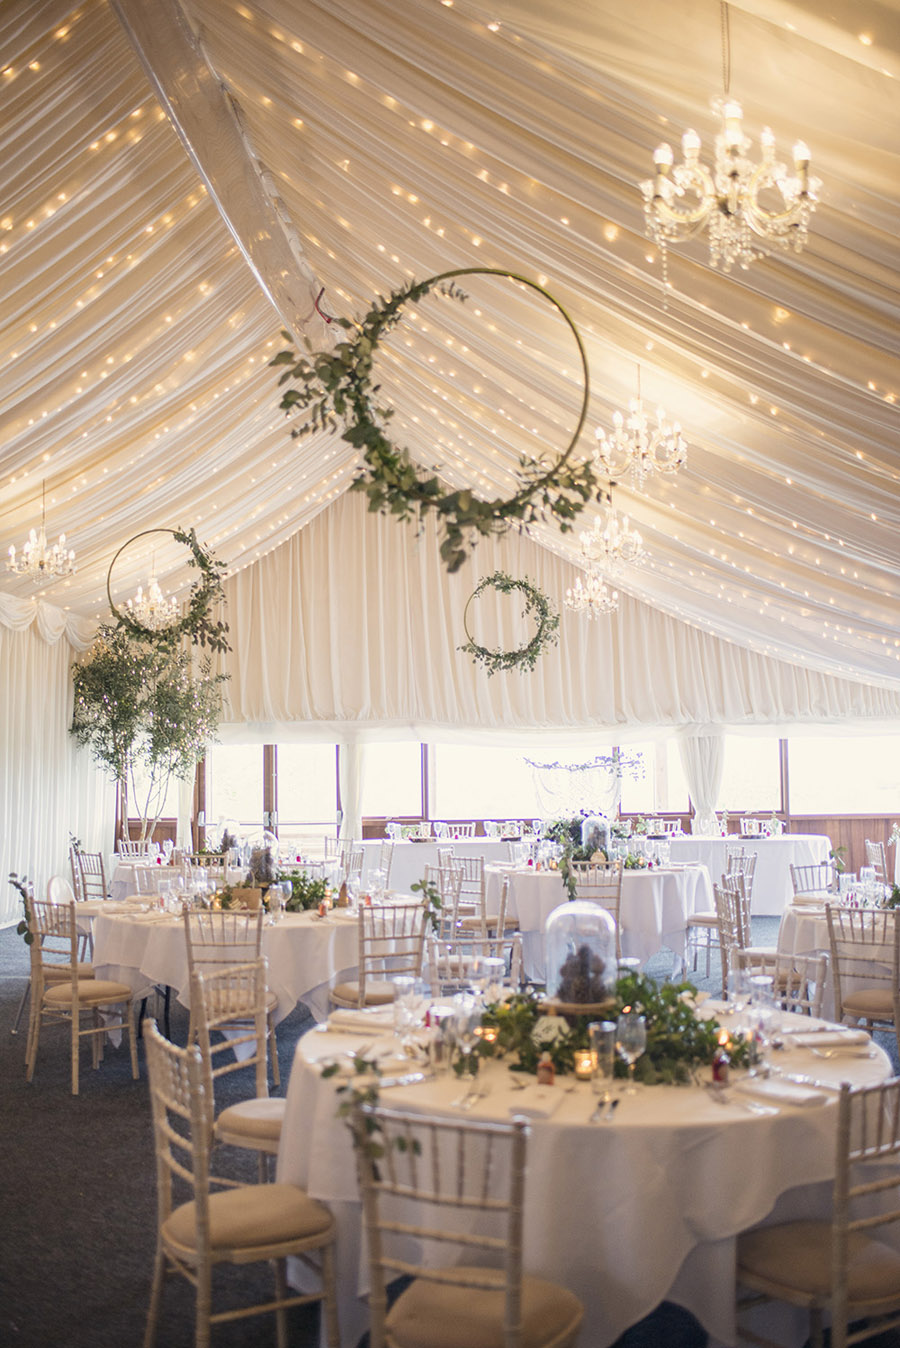 Gatsby vintage wedding at Crockwell Farm, images by Jodie Cooling Photography (28)